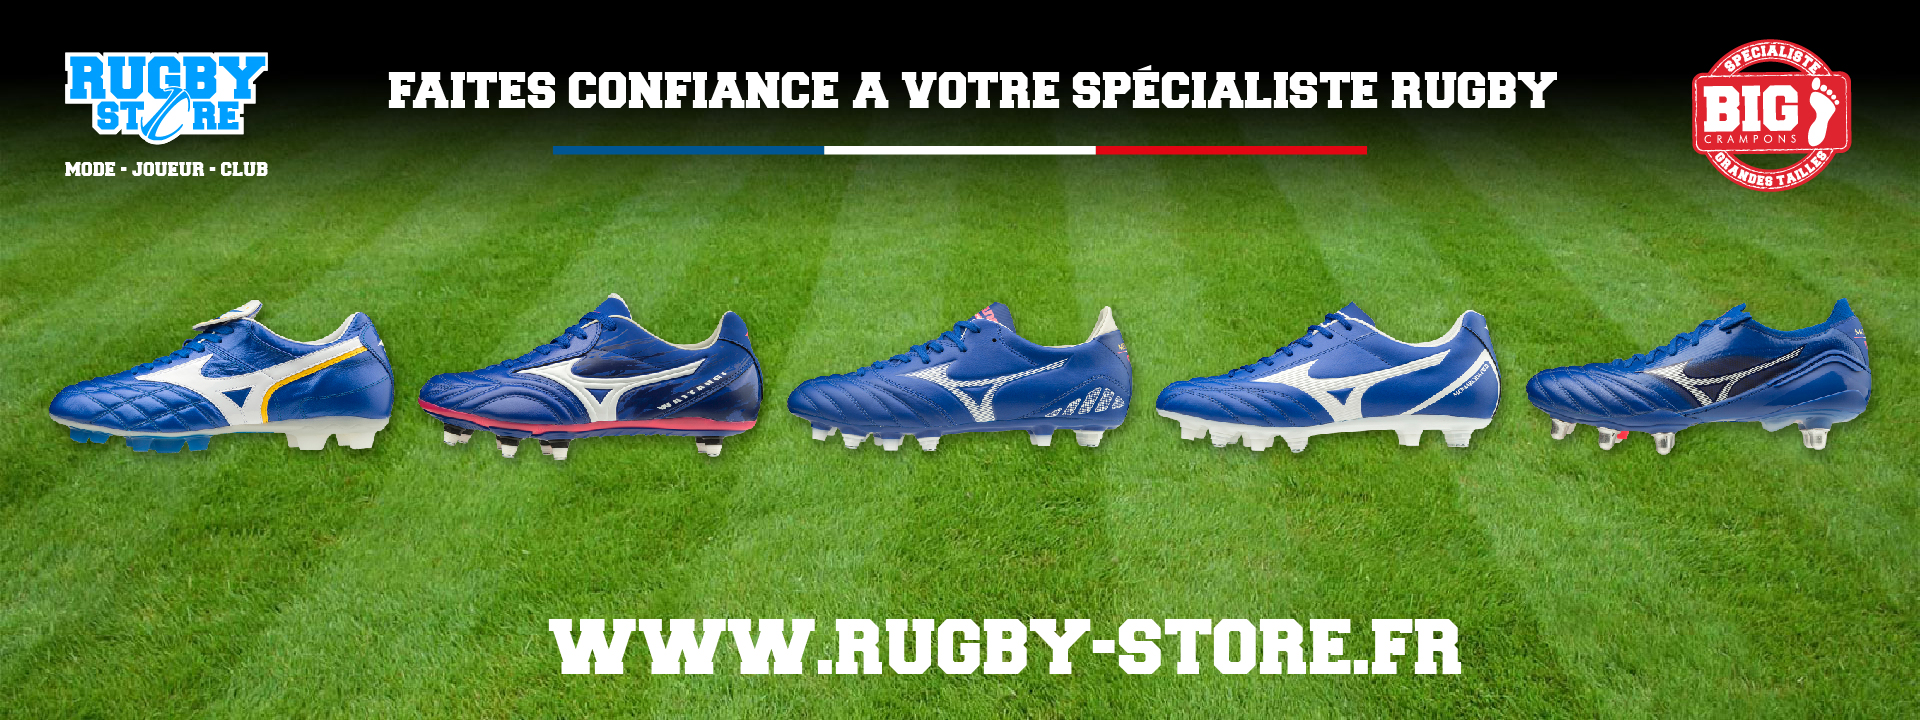 rugby store crampons mizuno